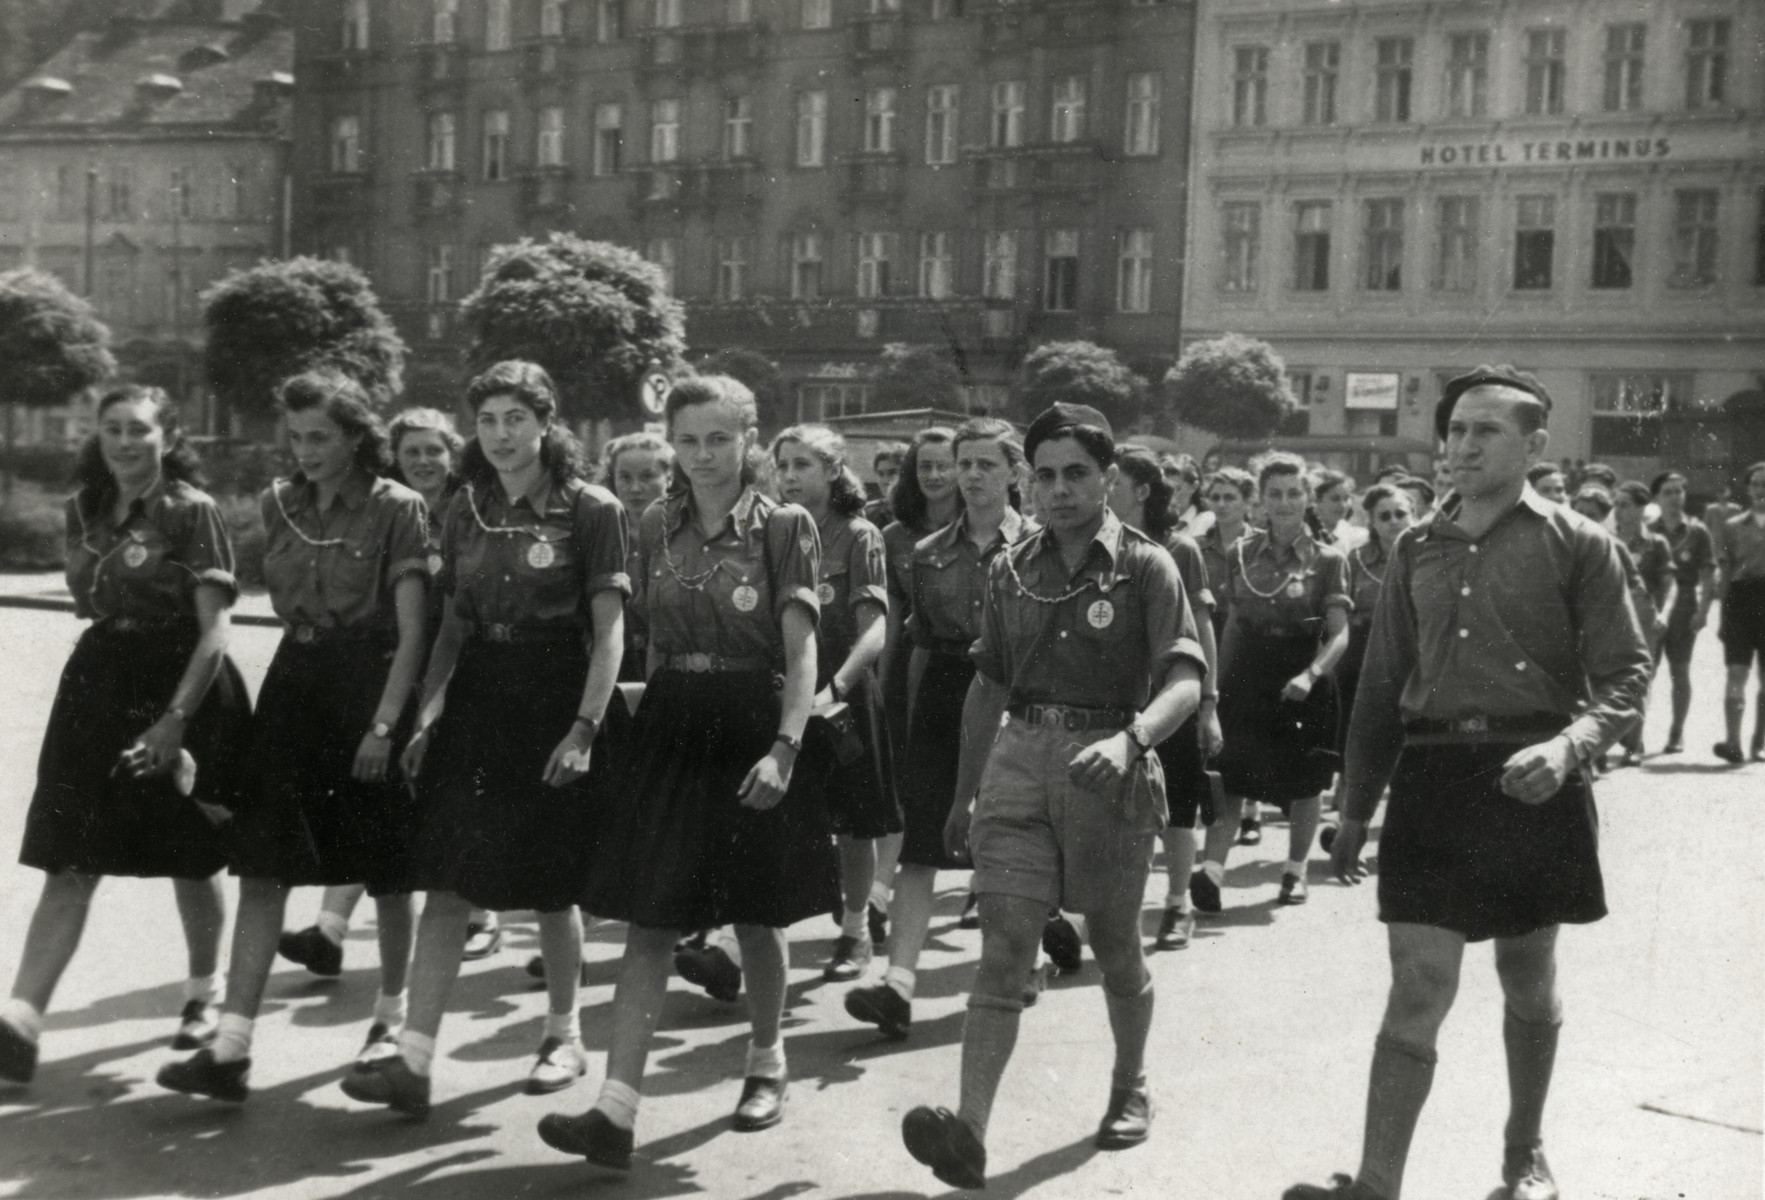 Zionist youth parade in Karlovy Vary.